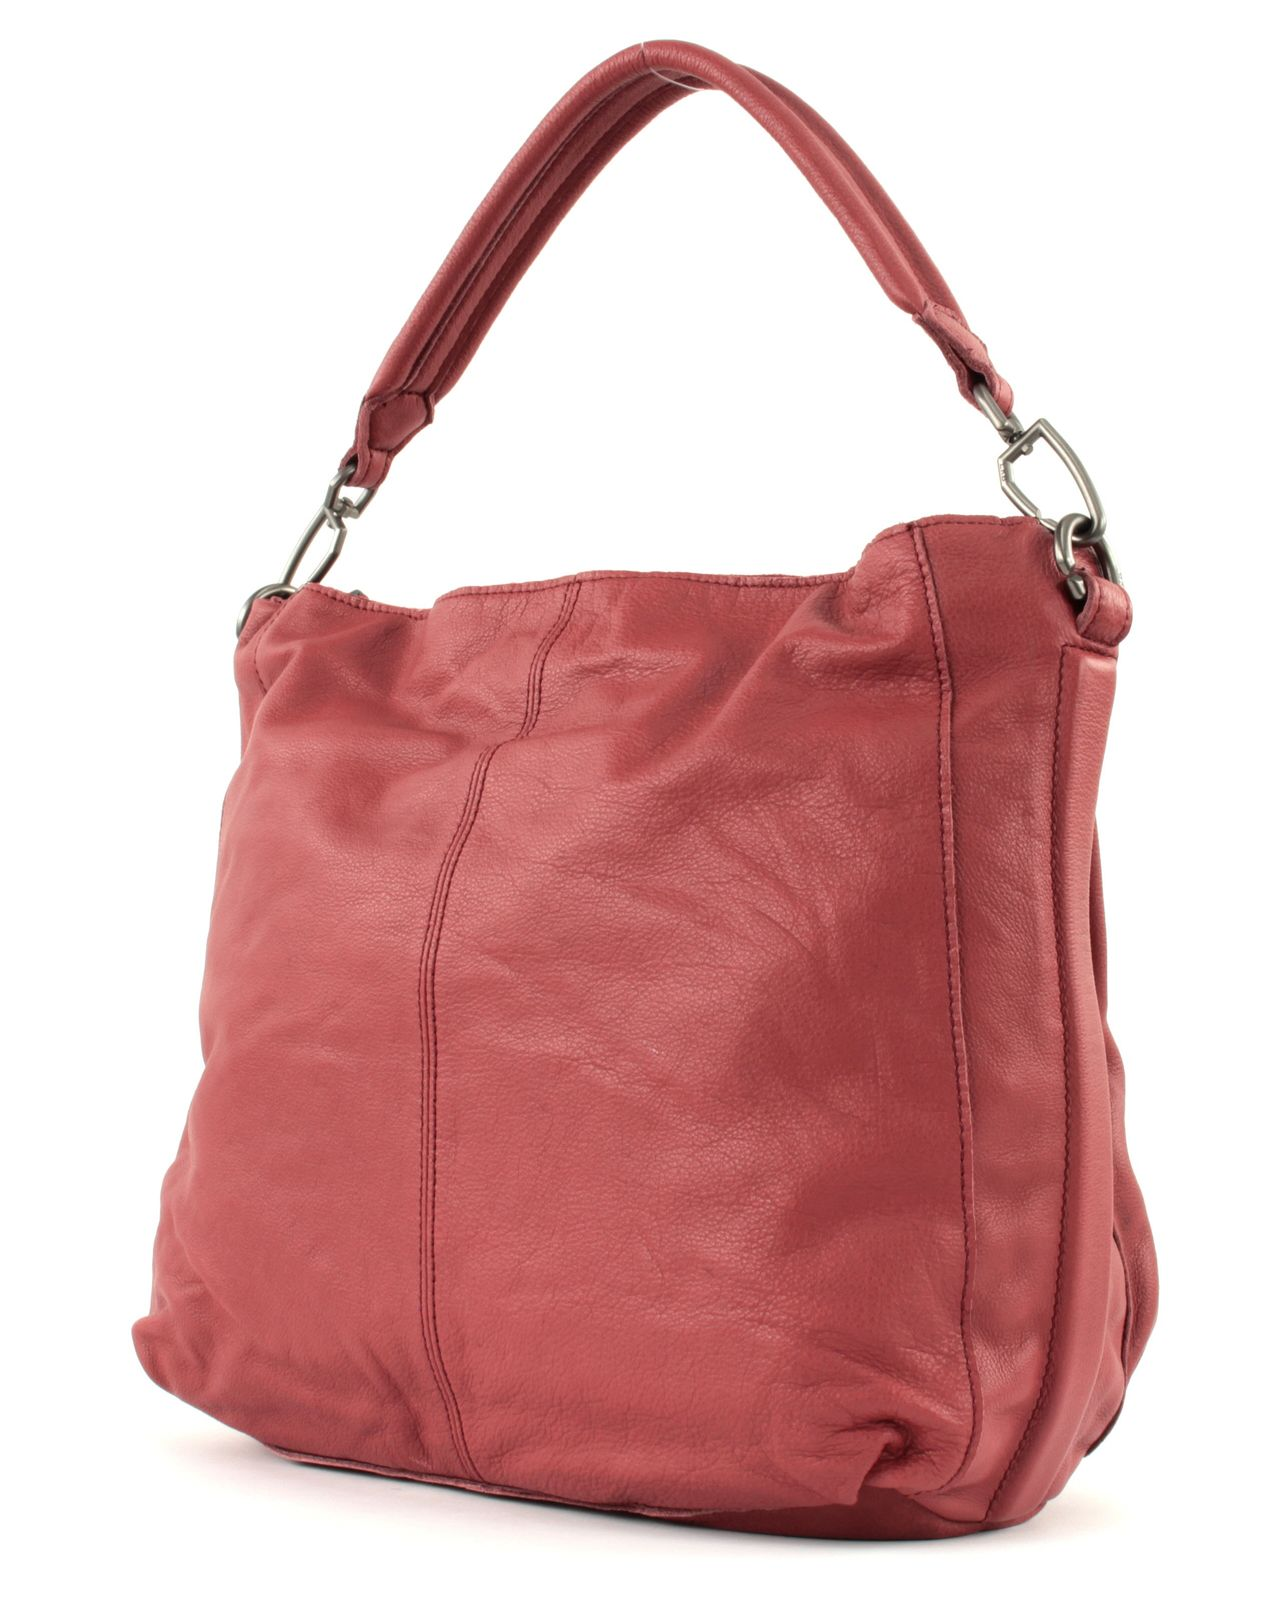 3a471f078e91 LIEBESKIND BERLIN Shoulder Bag Miramar